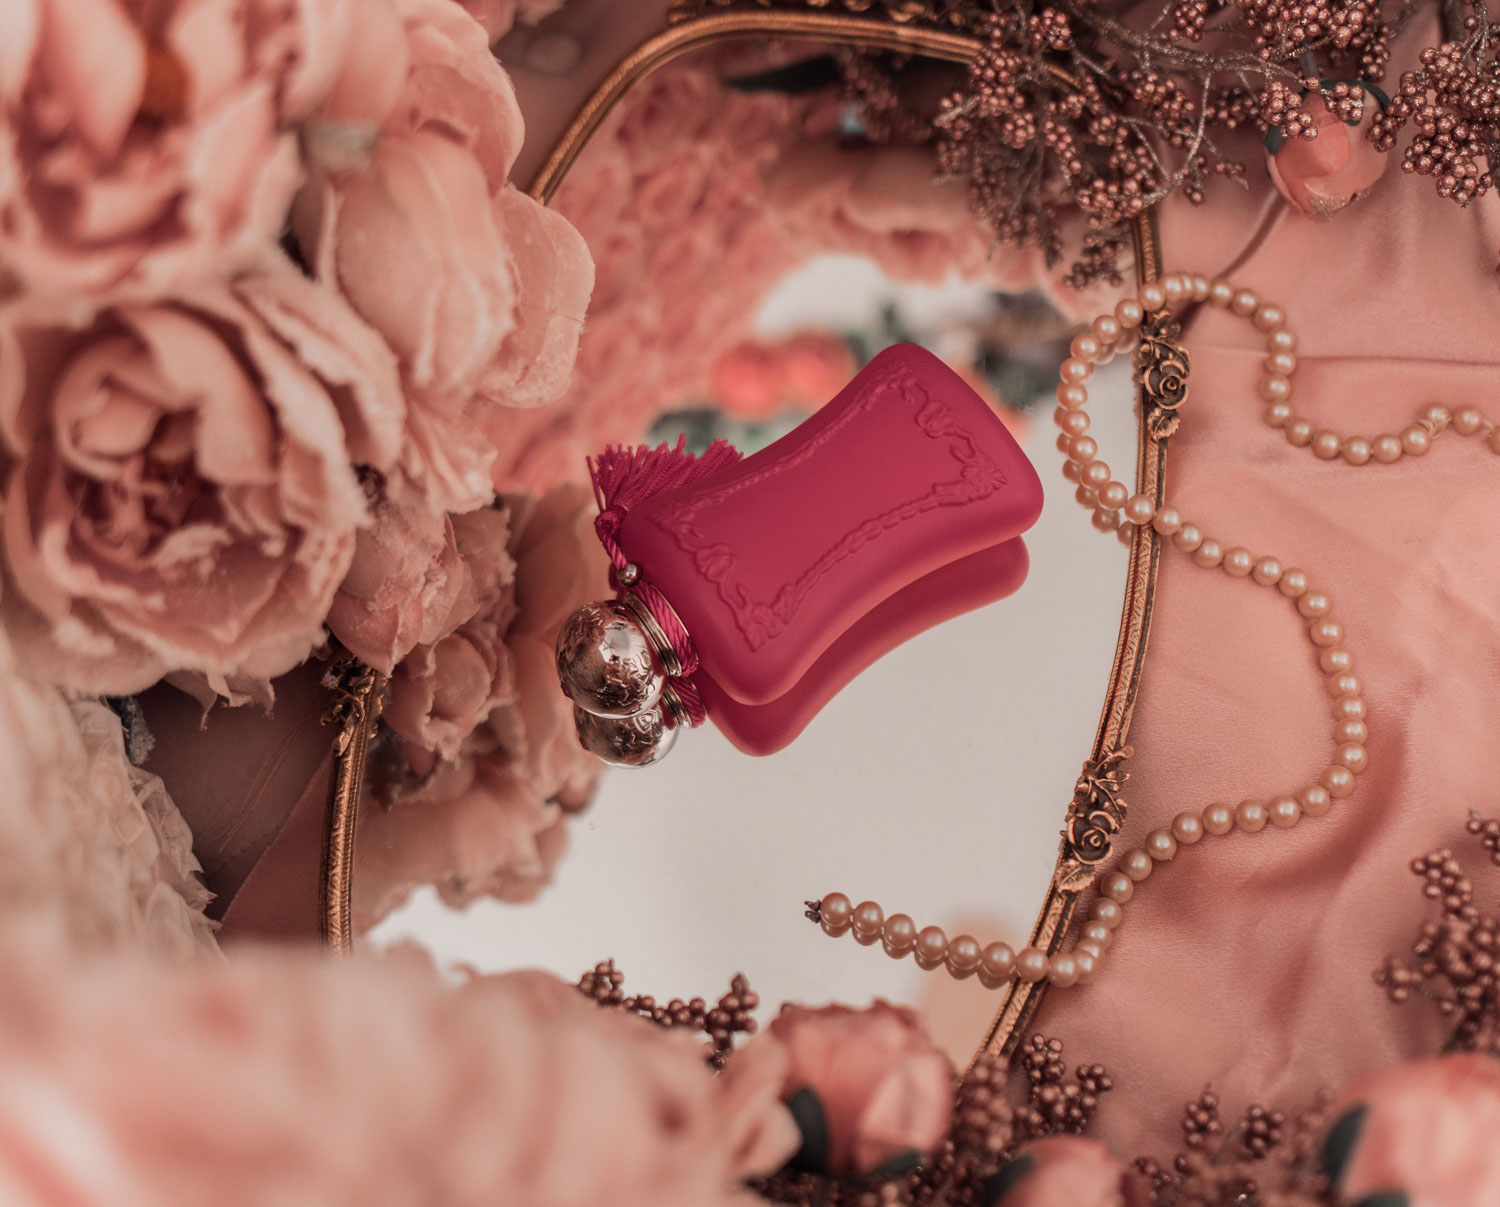 Feminine Fashion and Beauty Blogger Elizabeth Hugen of Lizzie in Lace shares her honest Parfums de Marly Oriana Review along with first impressions on this feminine fragrance